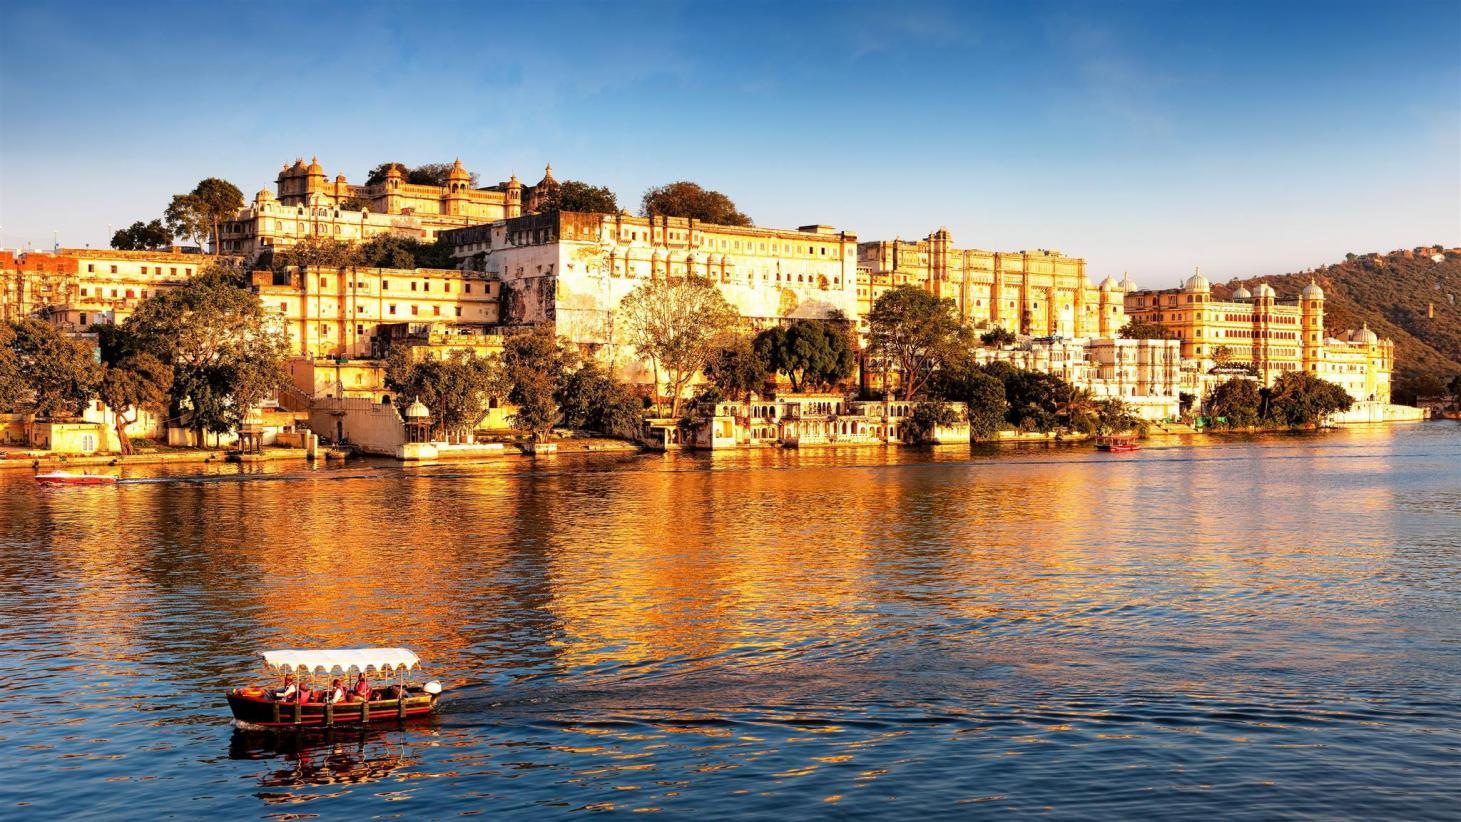 10 Best Udaipur Hotels: HD Photos + Reviews of Hotels in Udaipur, India